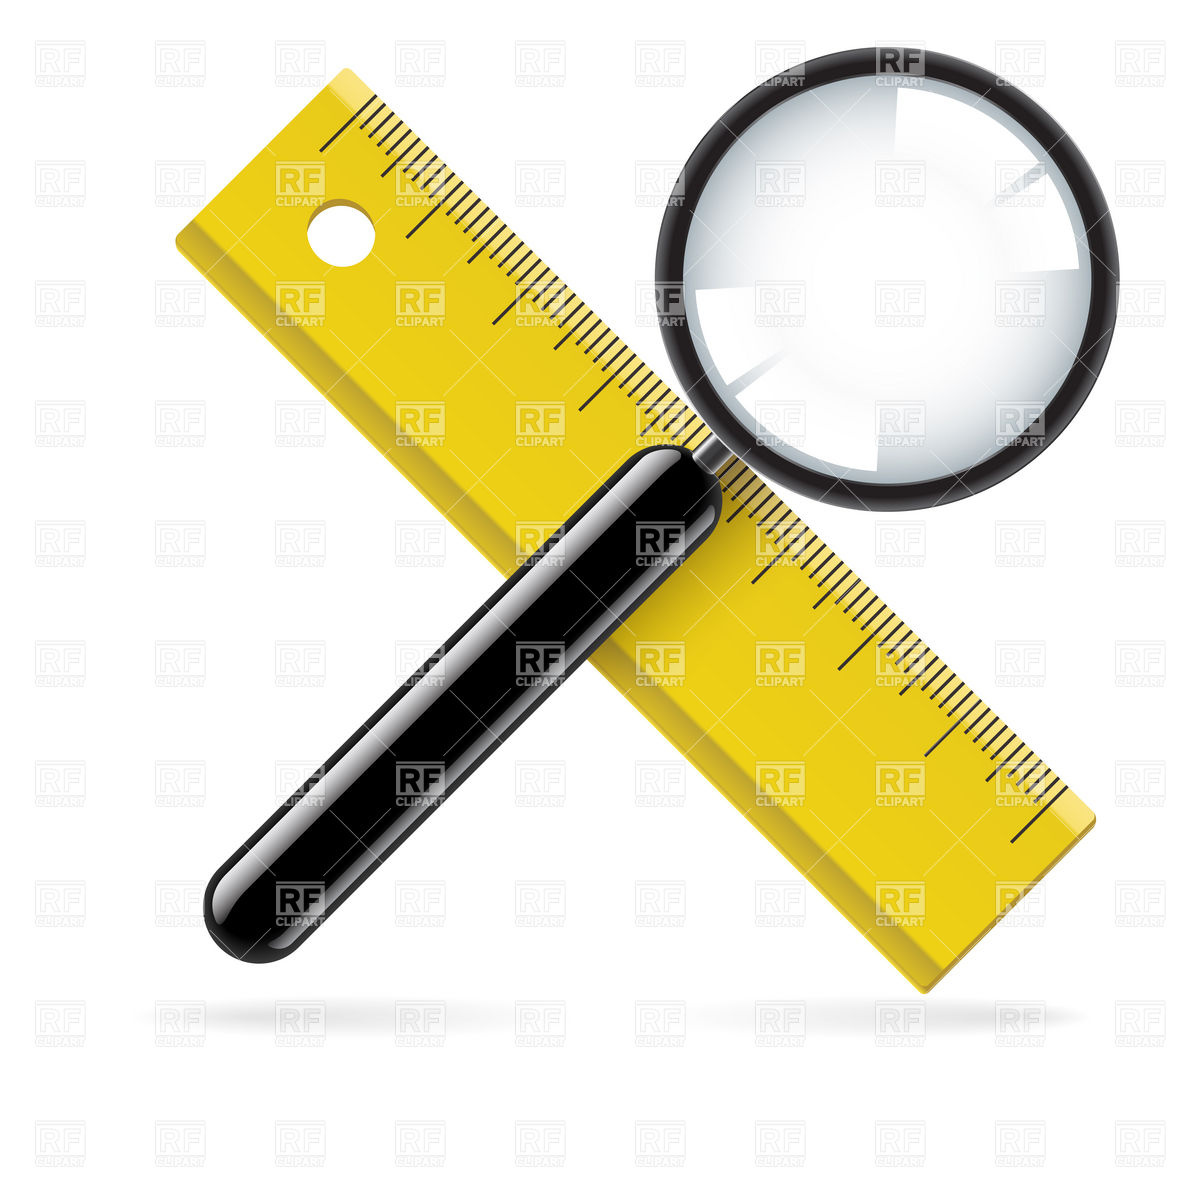 1200x1200 Transparent Ruler On Checkered Background Royalty Free Vector Clip